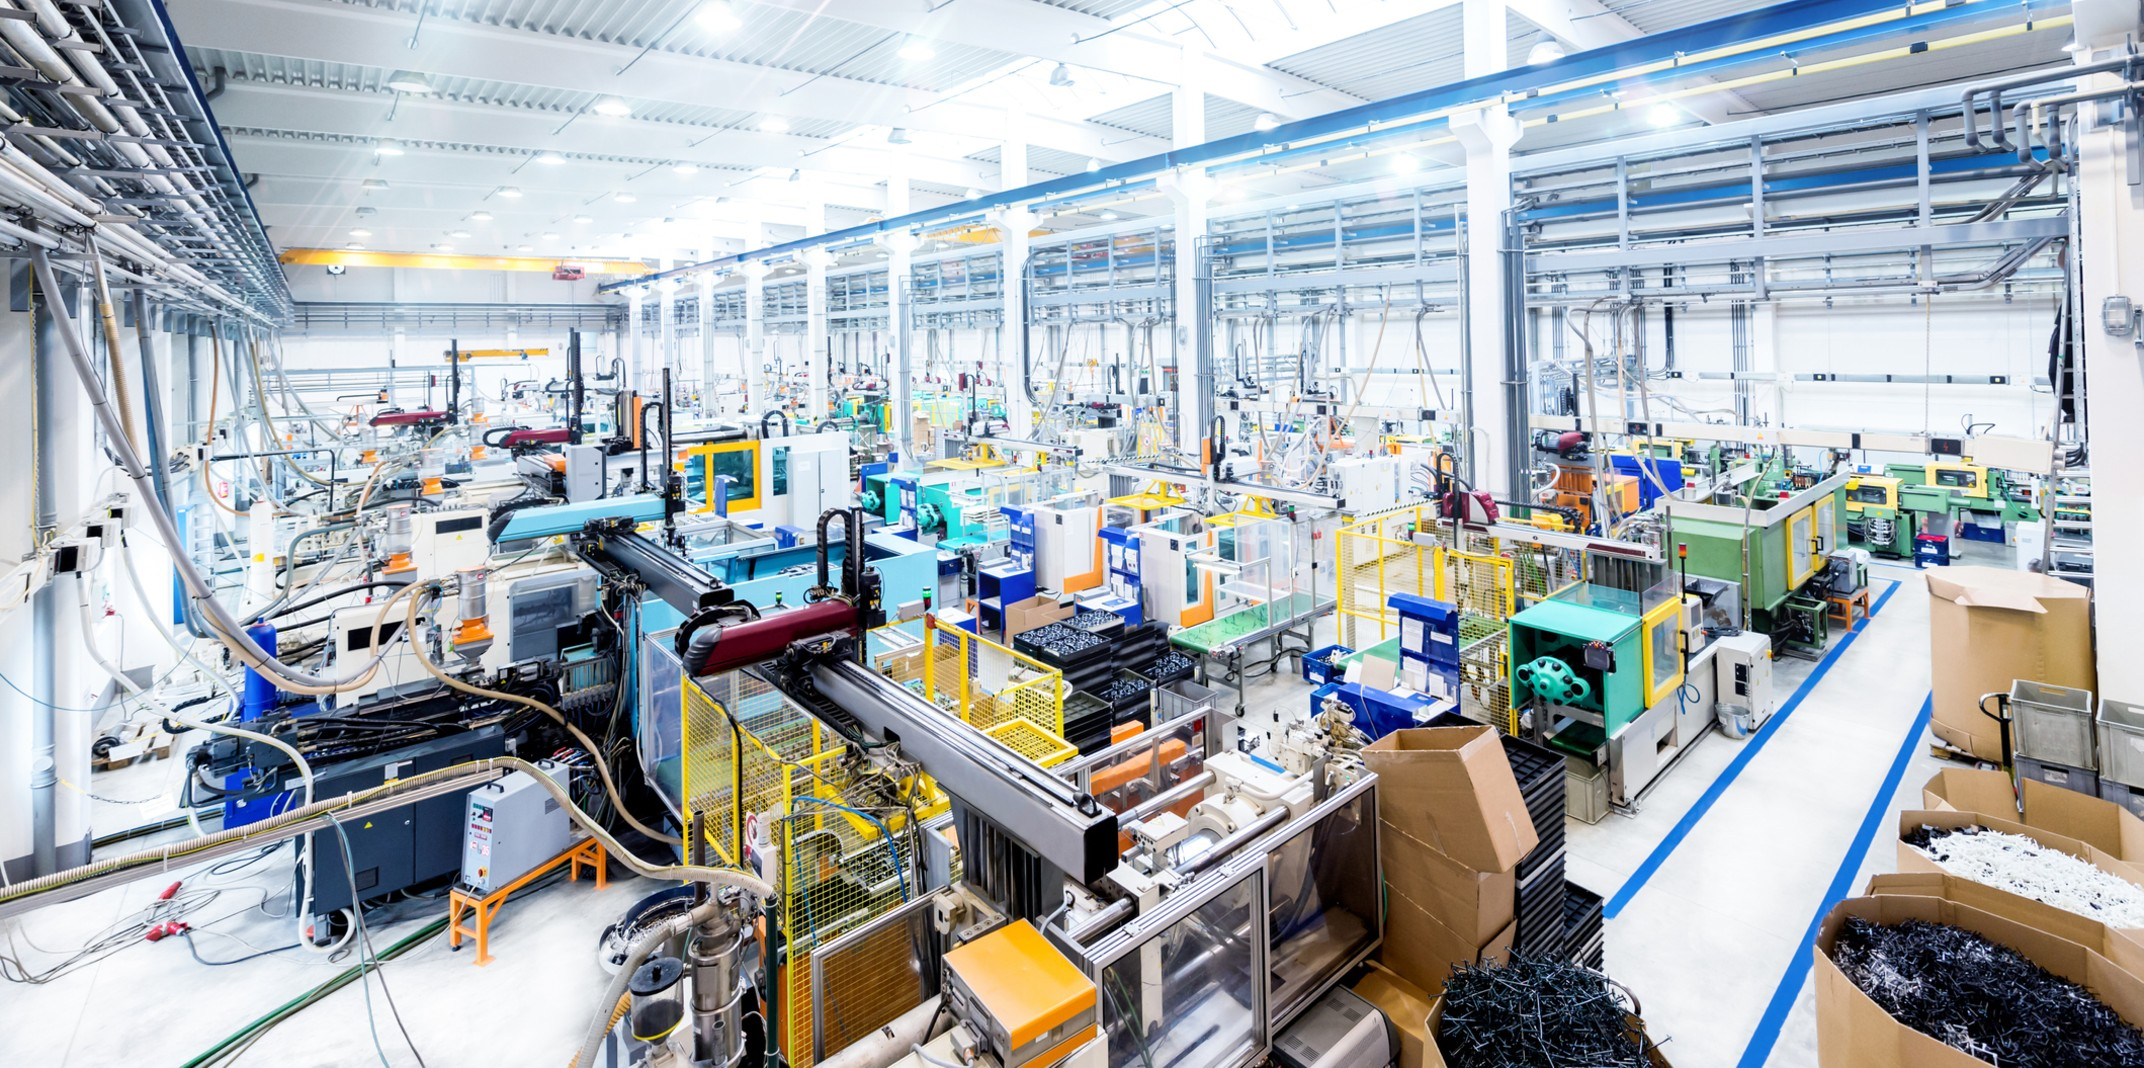 How Contract Manufacturers Help OEMs Resolve Capacity Issues